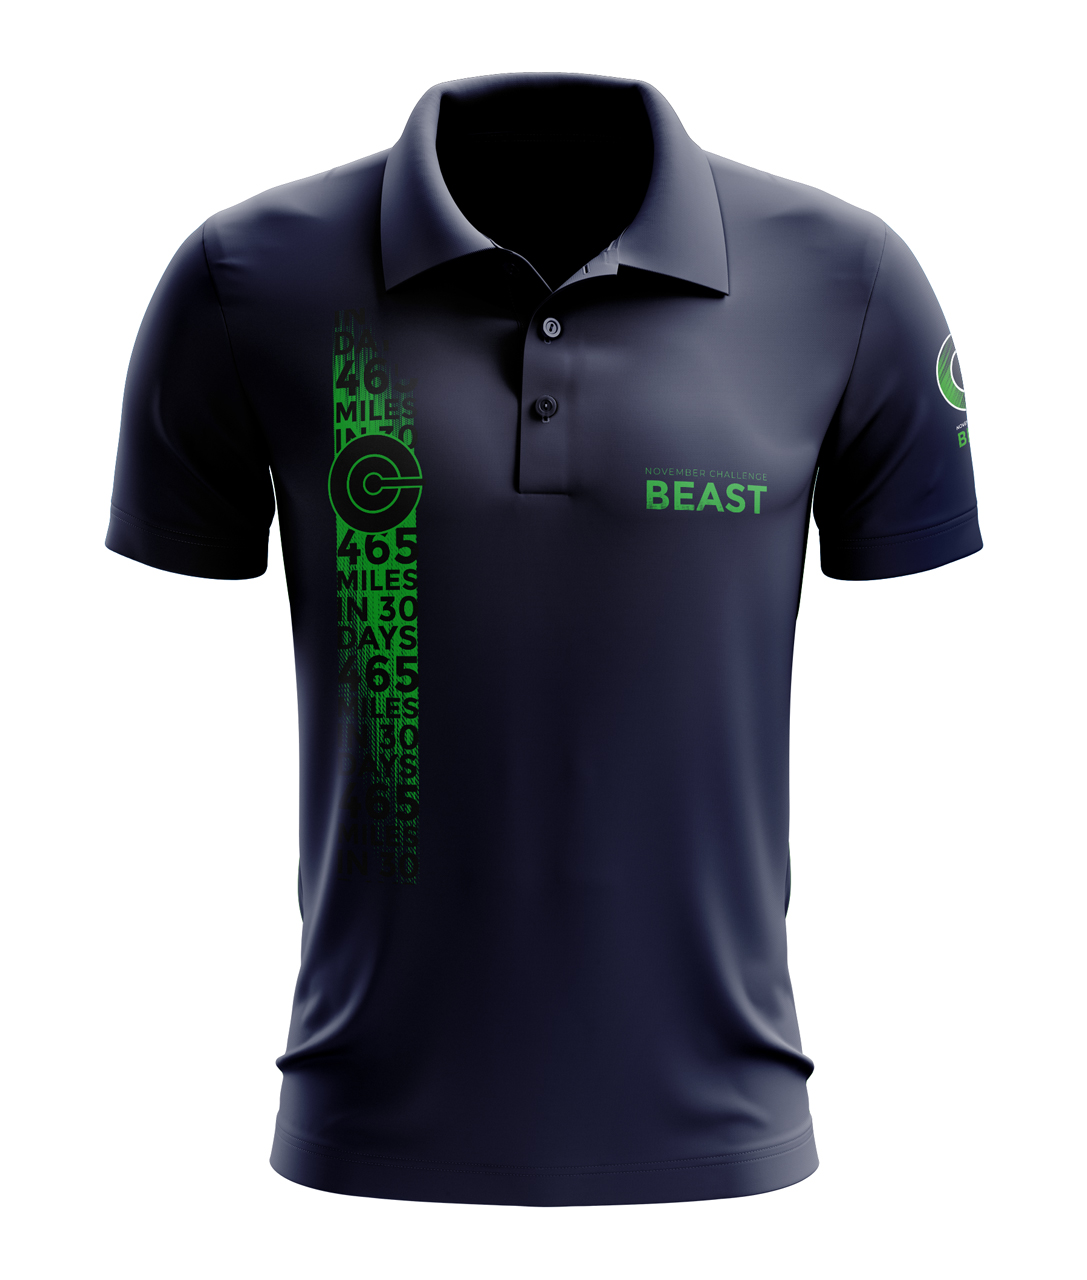 November Challenge 'The Beast' Polo